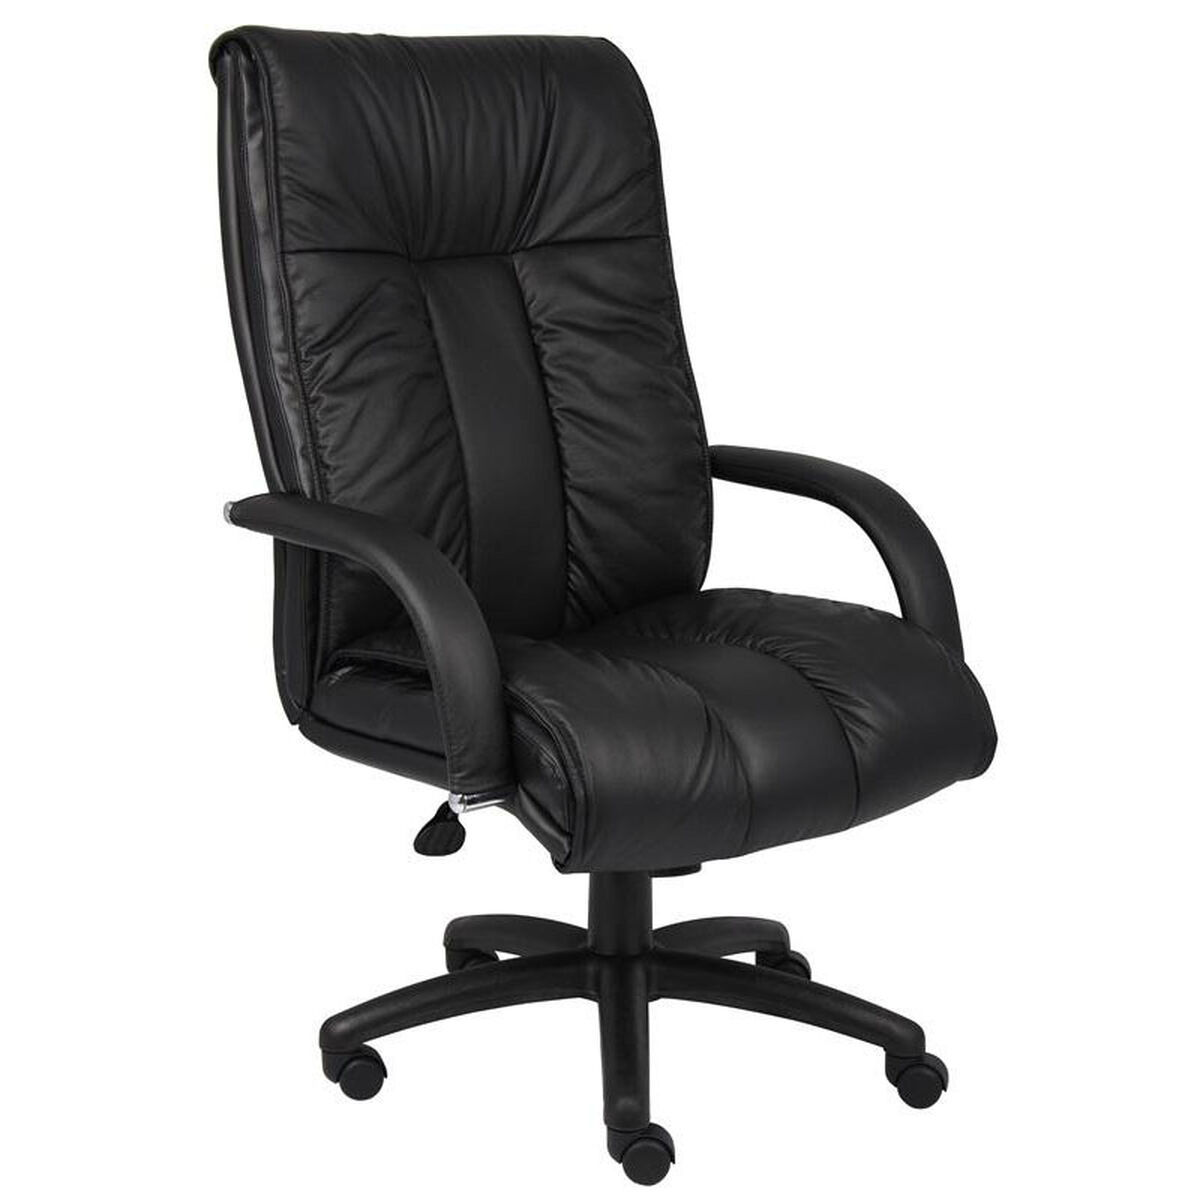 Higbacexsofi Boss Our Italian Leather High Back Executive Chair With Armrests Black Is On Now